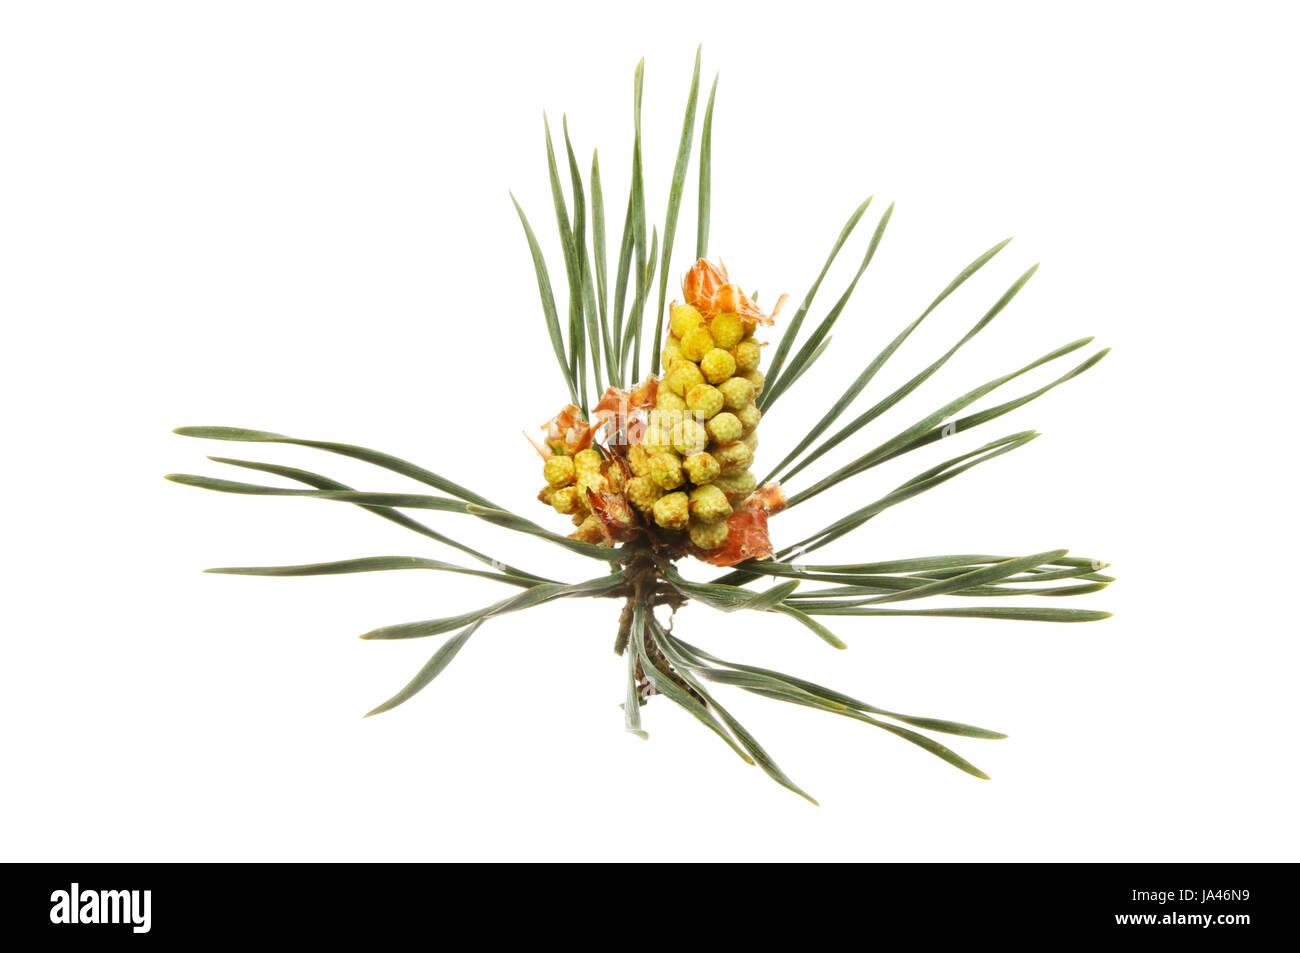 Conifer flower and pine needles isolated against white - Stock Image